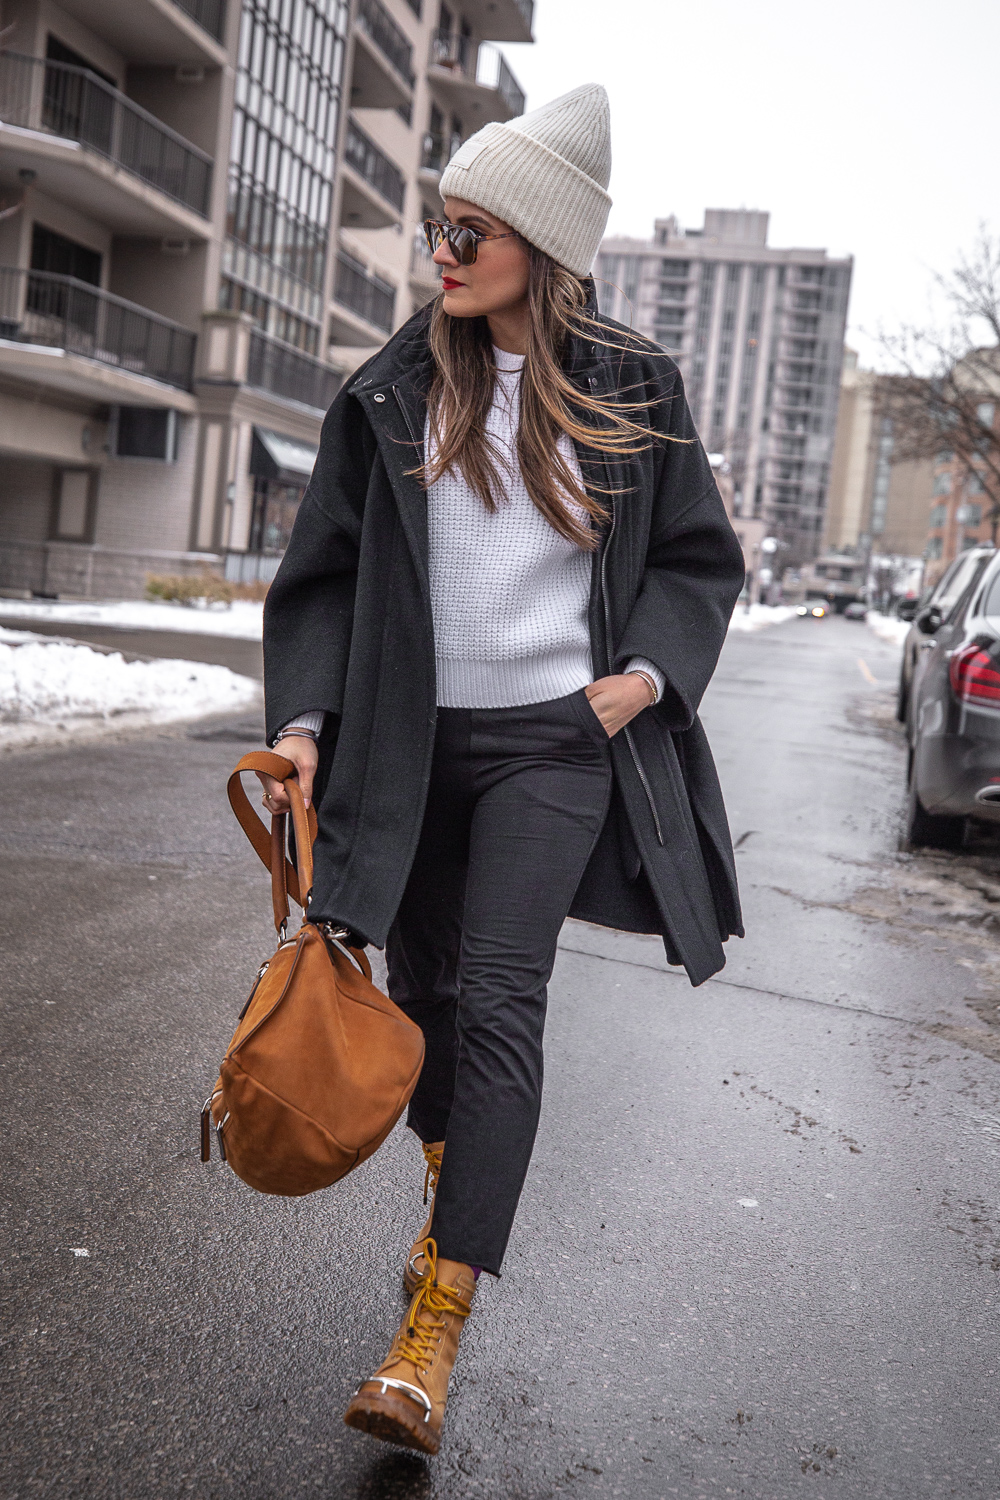 nathalie martin - vince wool coat, acne studios white sweater, pansy beanie, frank and eileen trouser joggers, alexander wang lyndon boots, givenchy medium pandora, bonlook jerry glasses, pinterest @woahstyle_7217.jpg